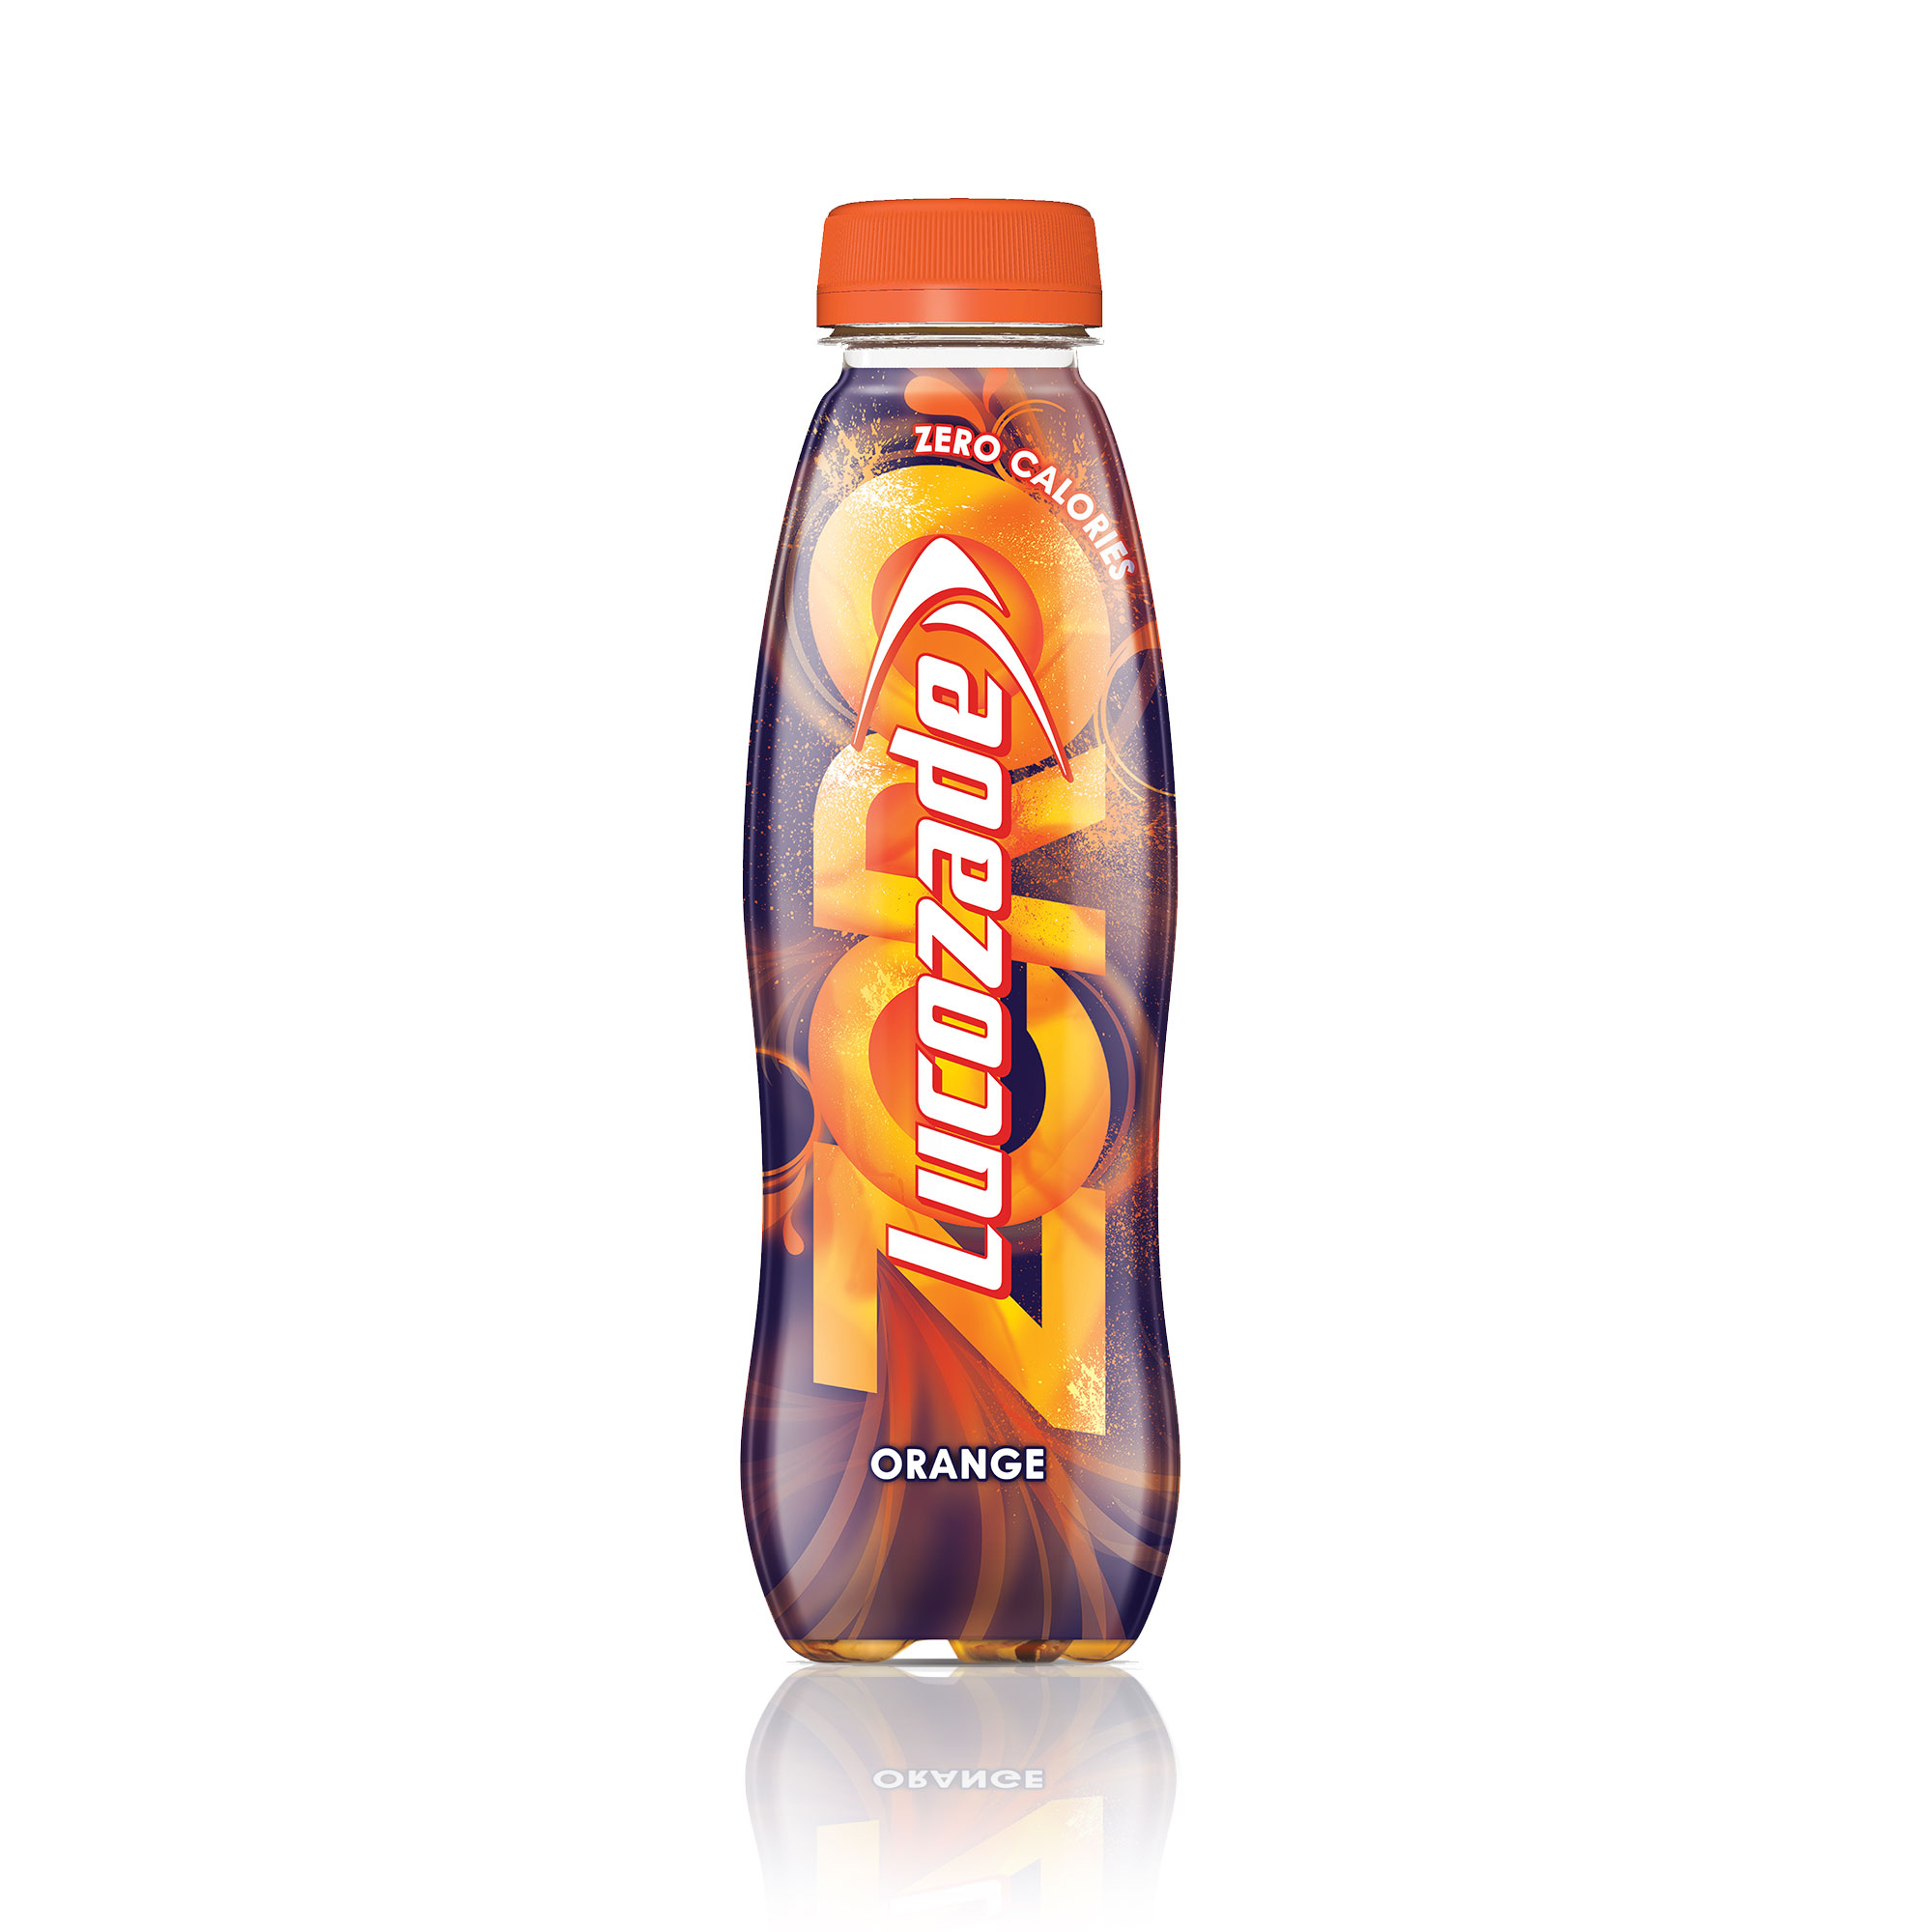 The soft drink industry's less sugary future: Lucozade Ribena Suntory's COO, Peter Harding, talks about the hurdles, rewards and future plans he has for reformulation and the industry